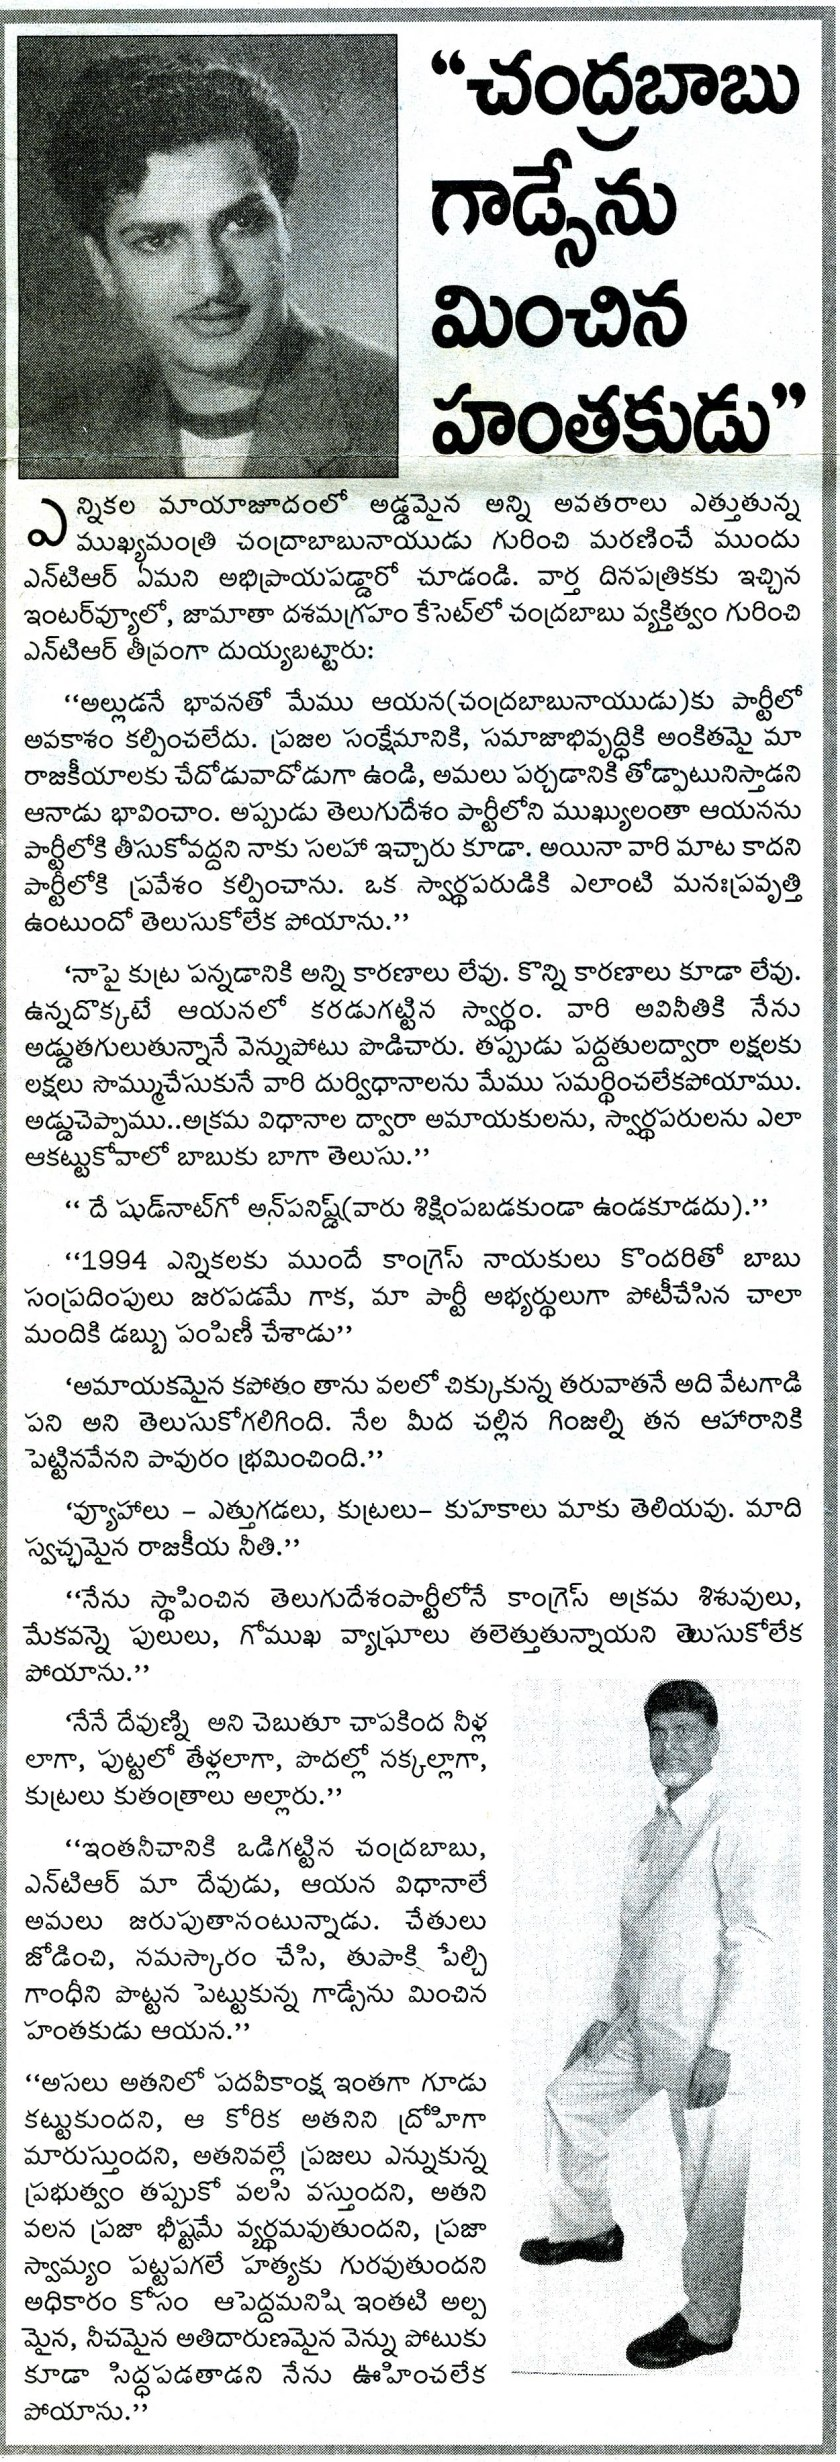 Chandrababu article1